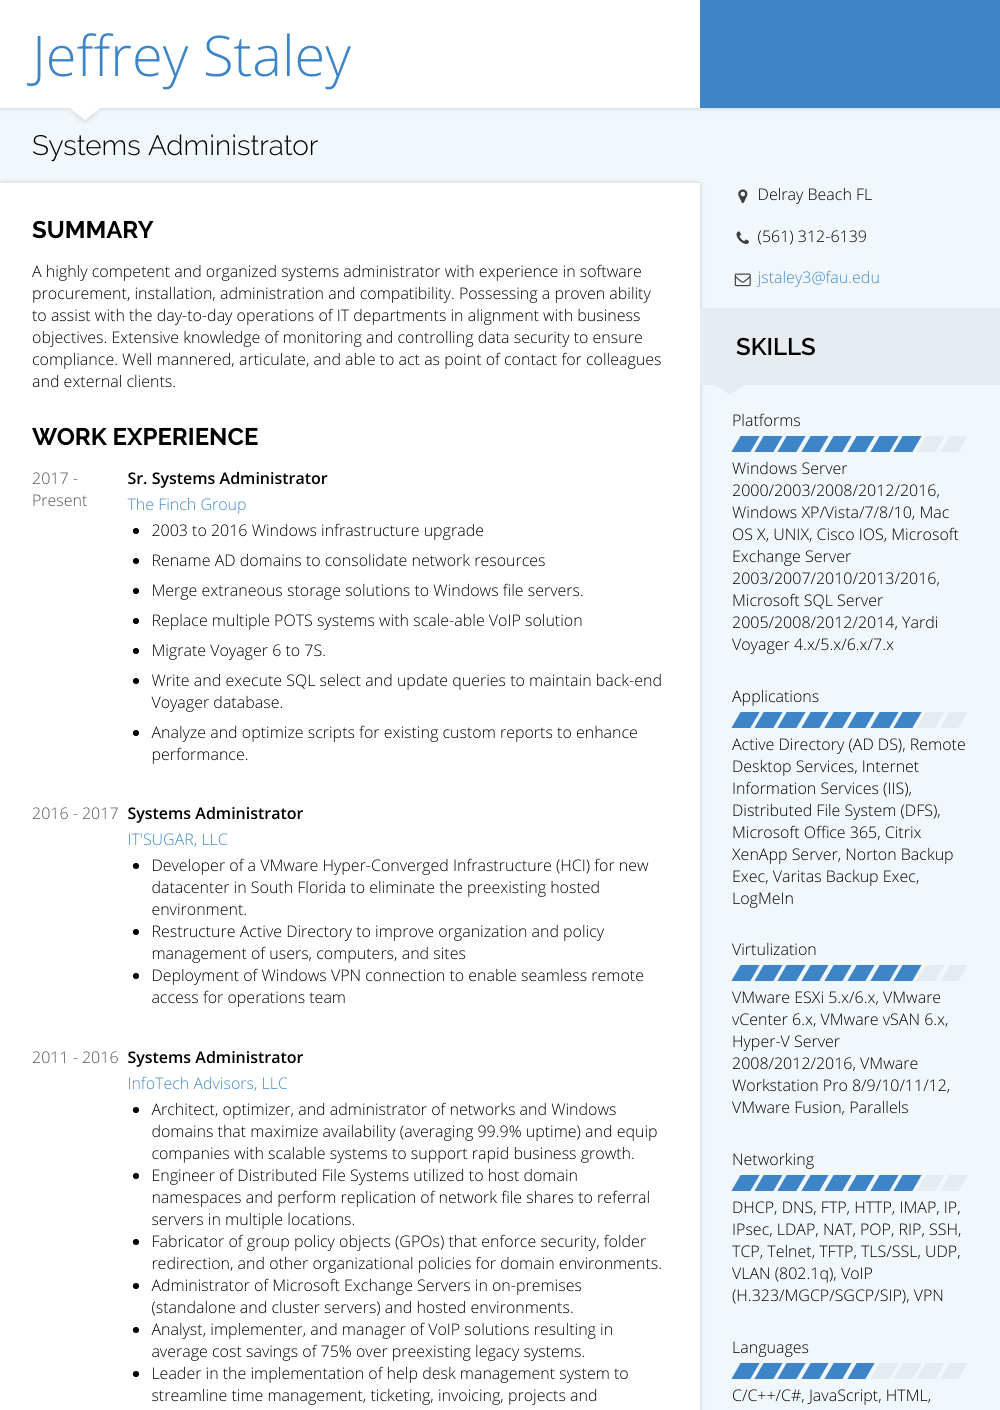 Systems Administrator - Resume Samples & Templates | VisualCV